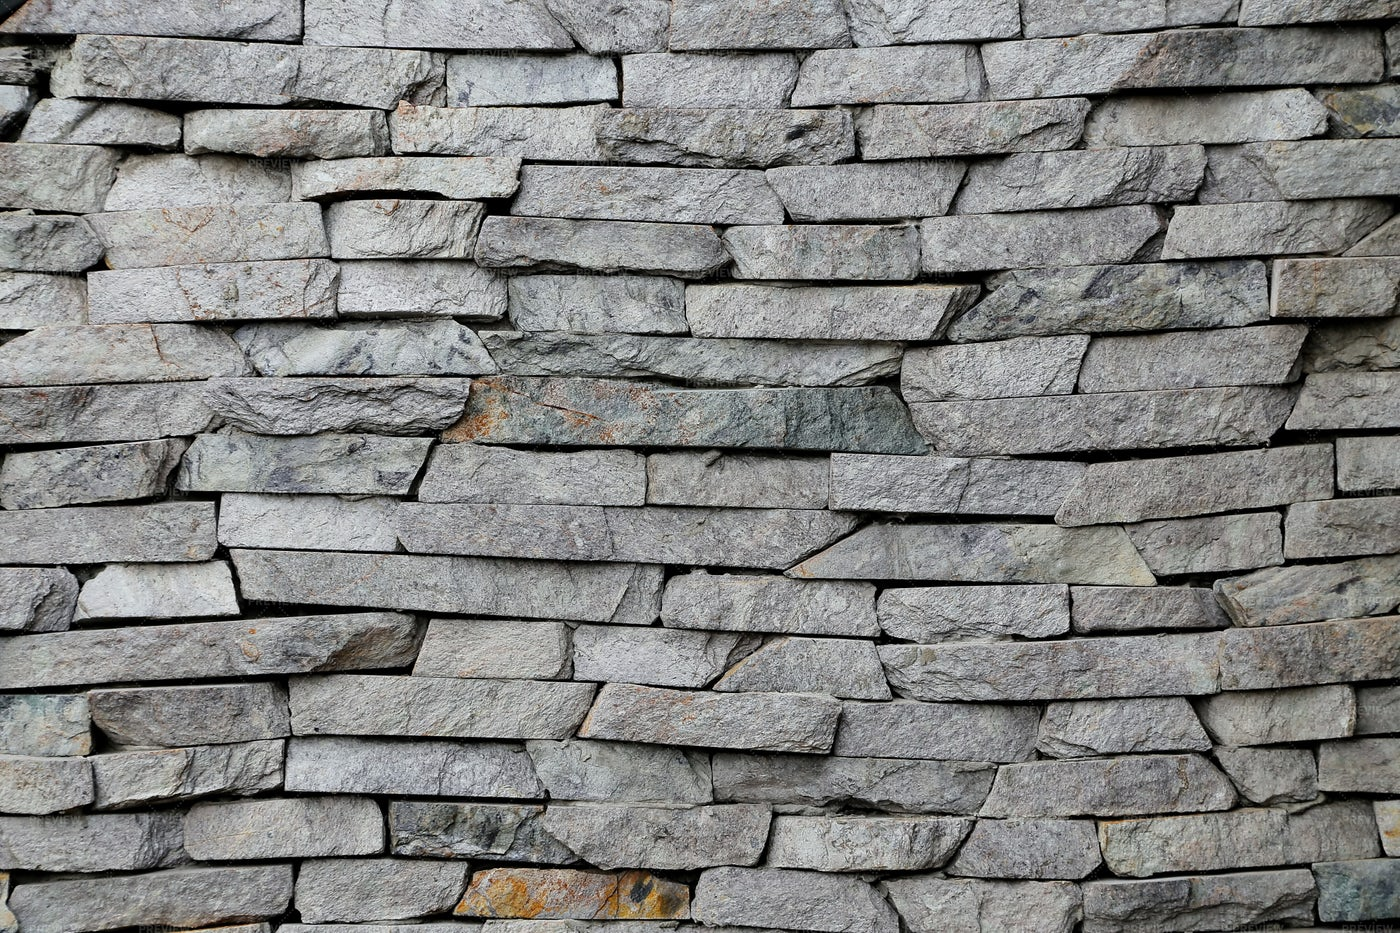 Wall Texture With Uneven Stones: Stock Photos